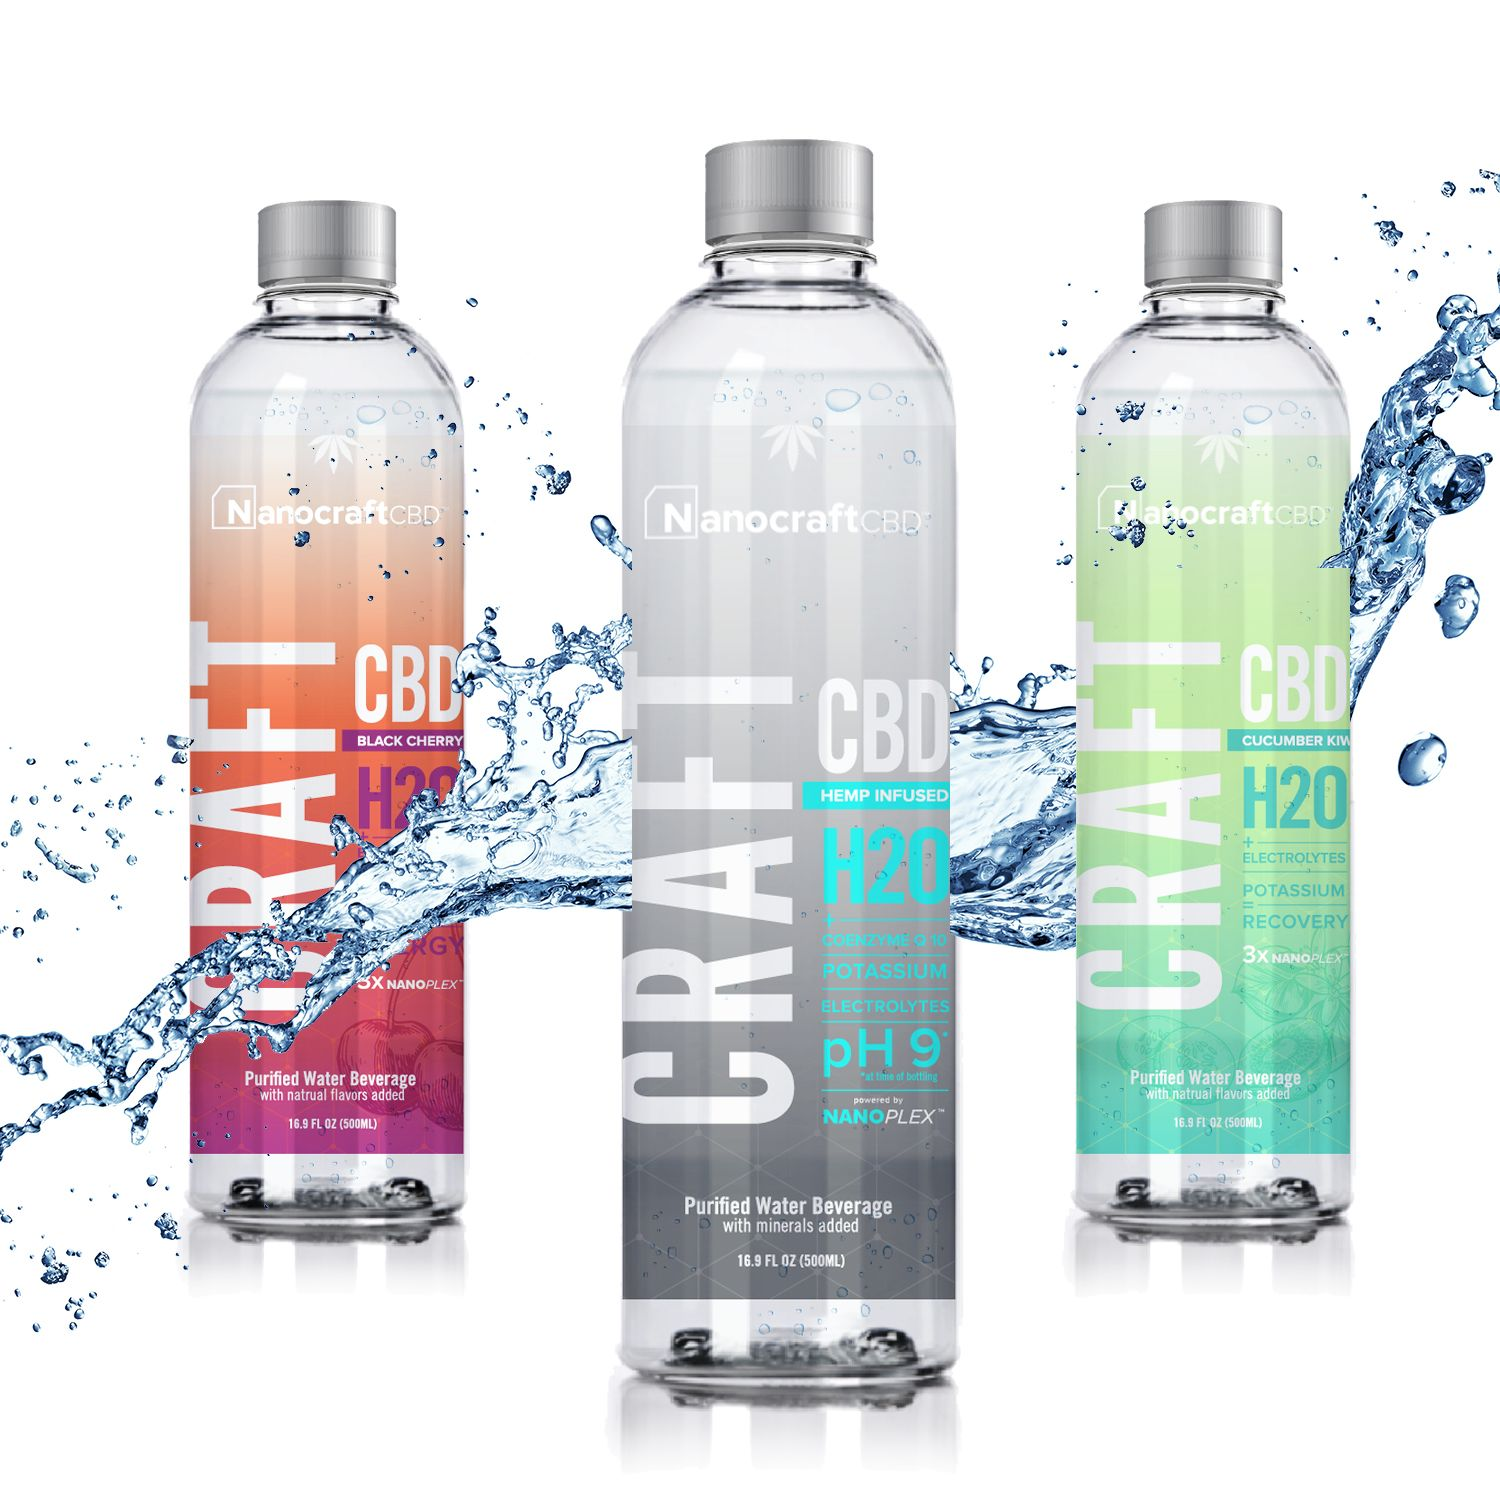 Created by a team of doctors, the unique formulations in Craft H20